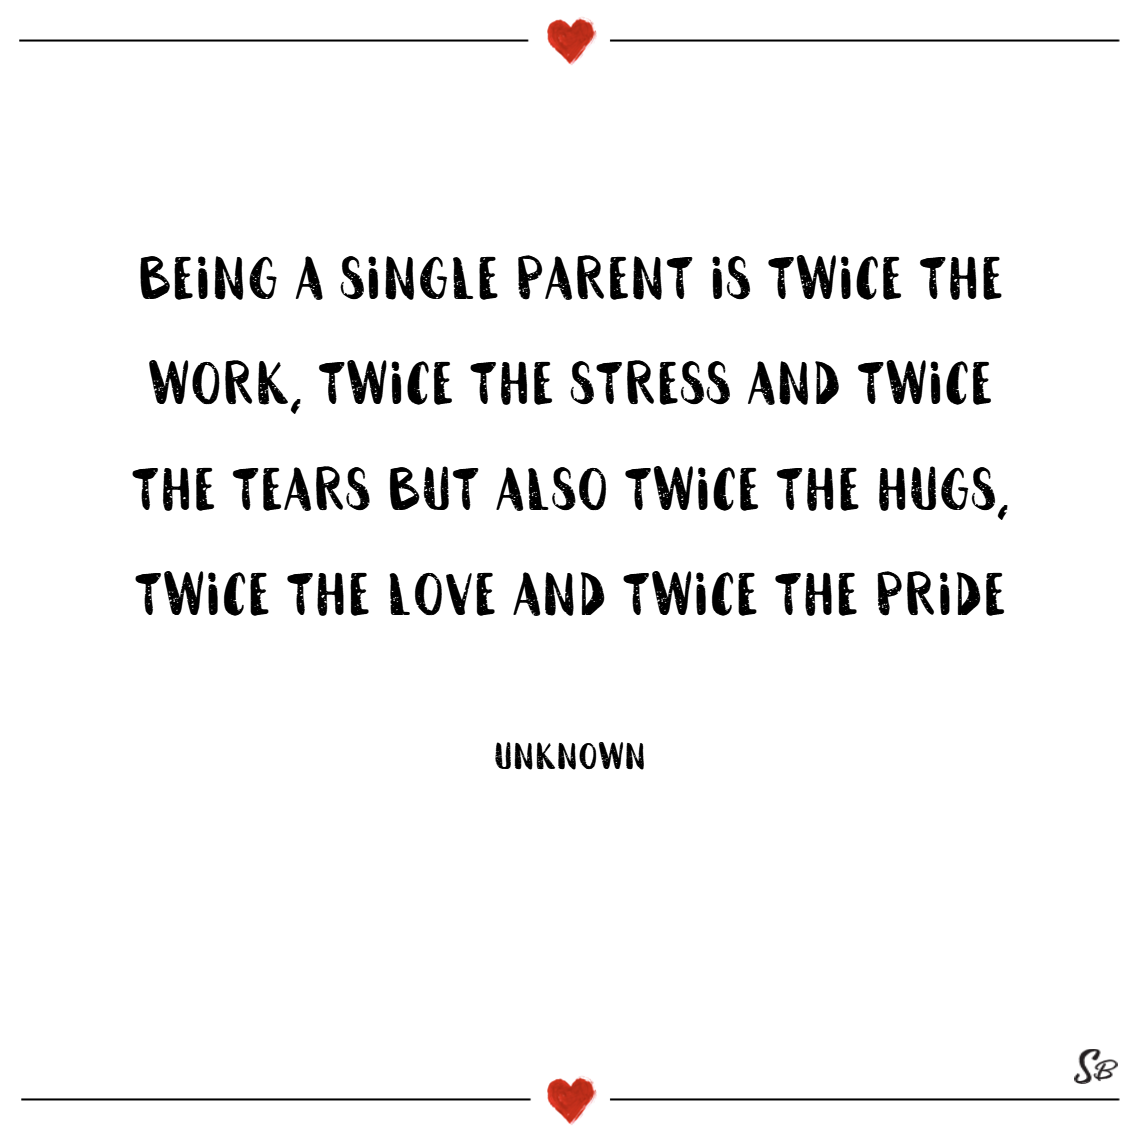 Being a single parent is twice the work, twice the stress and twice the tears but also twice the hugs, twice the love and twice the pride. – unknown single mom quotes